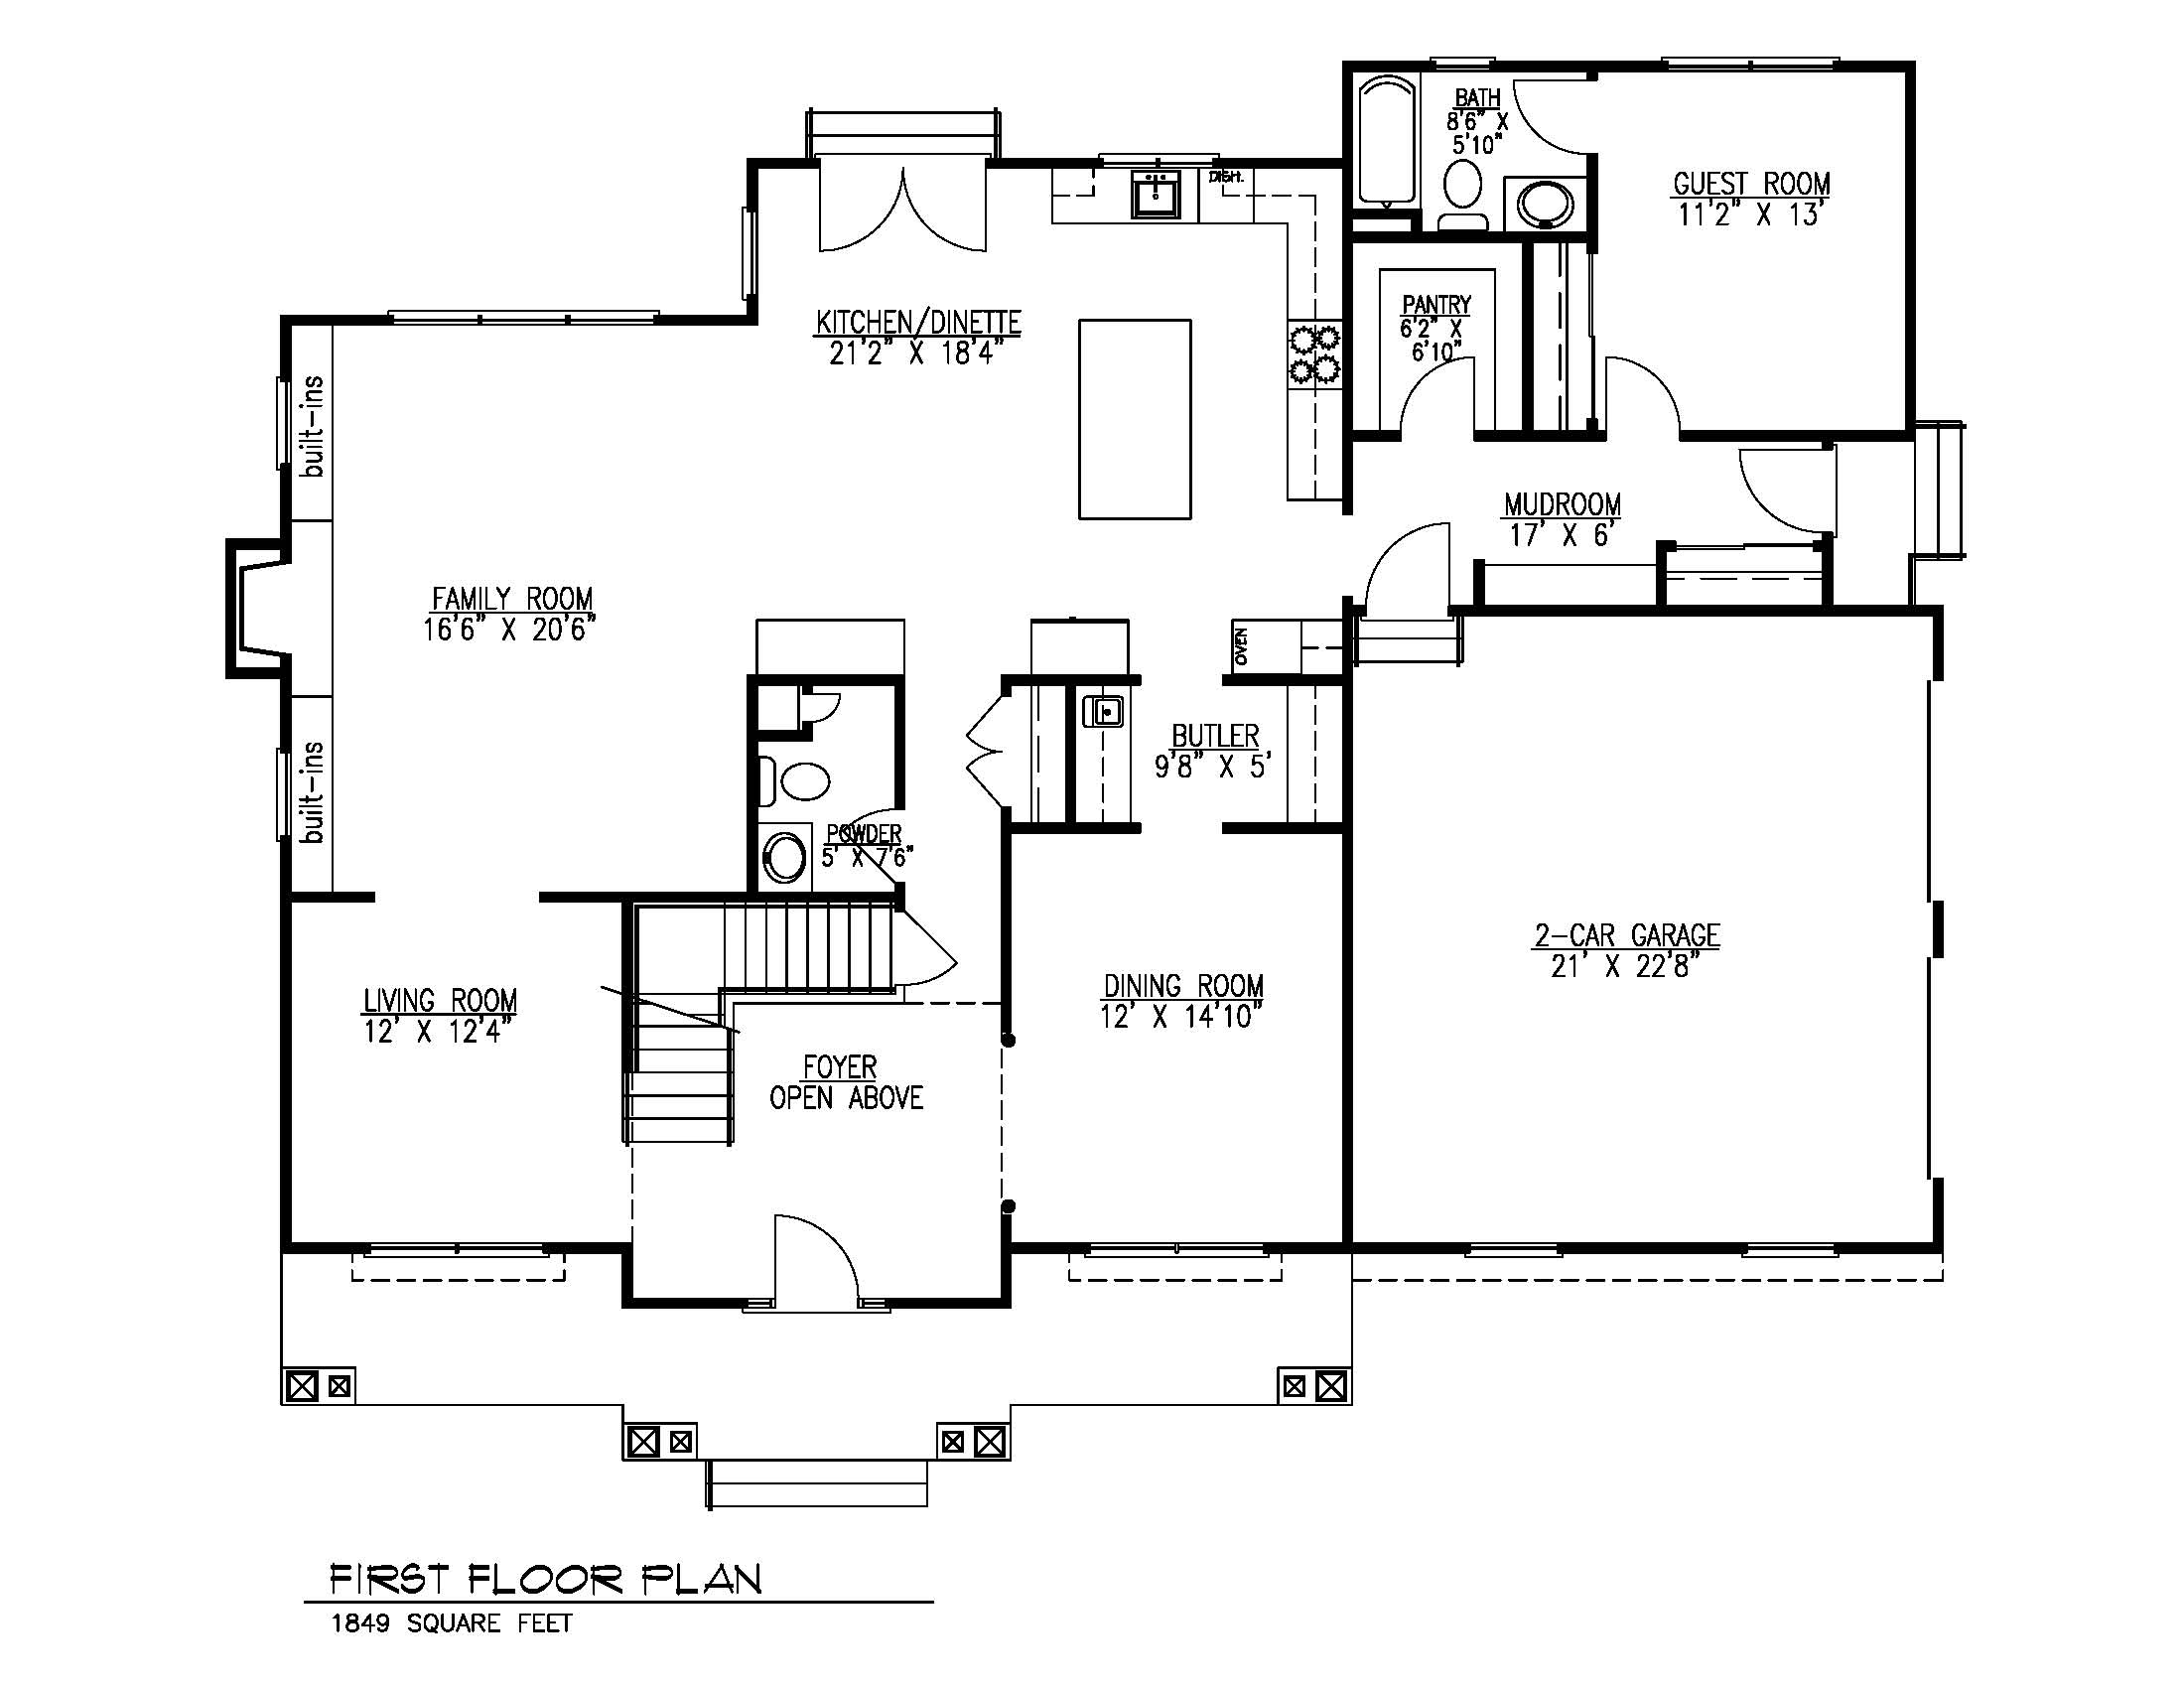 407 Quantuck First Floor Plan B&W